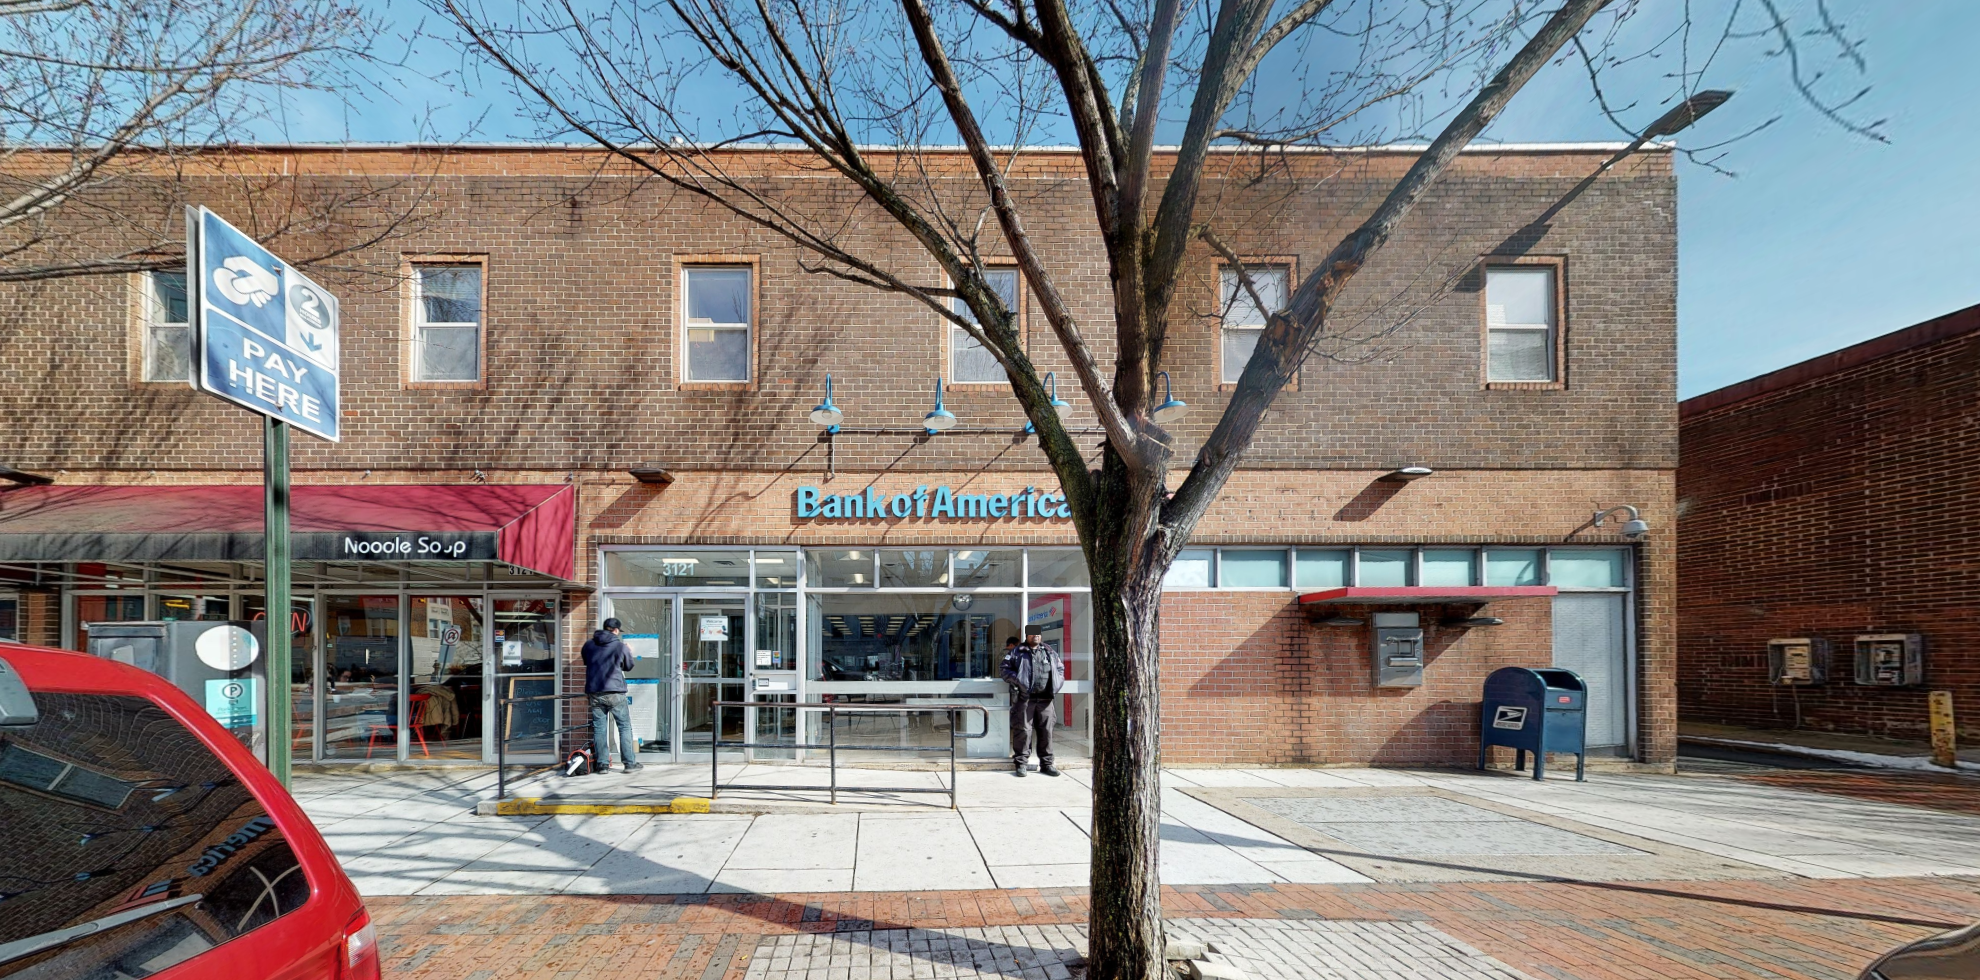 Bank of America financial center with drive-thru ATM | 3121 Saint Paul St, Baltimore, MD 21218